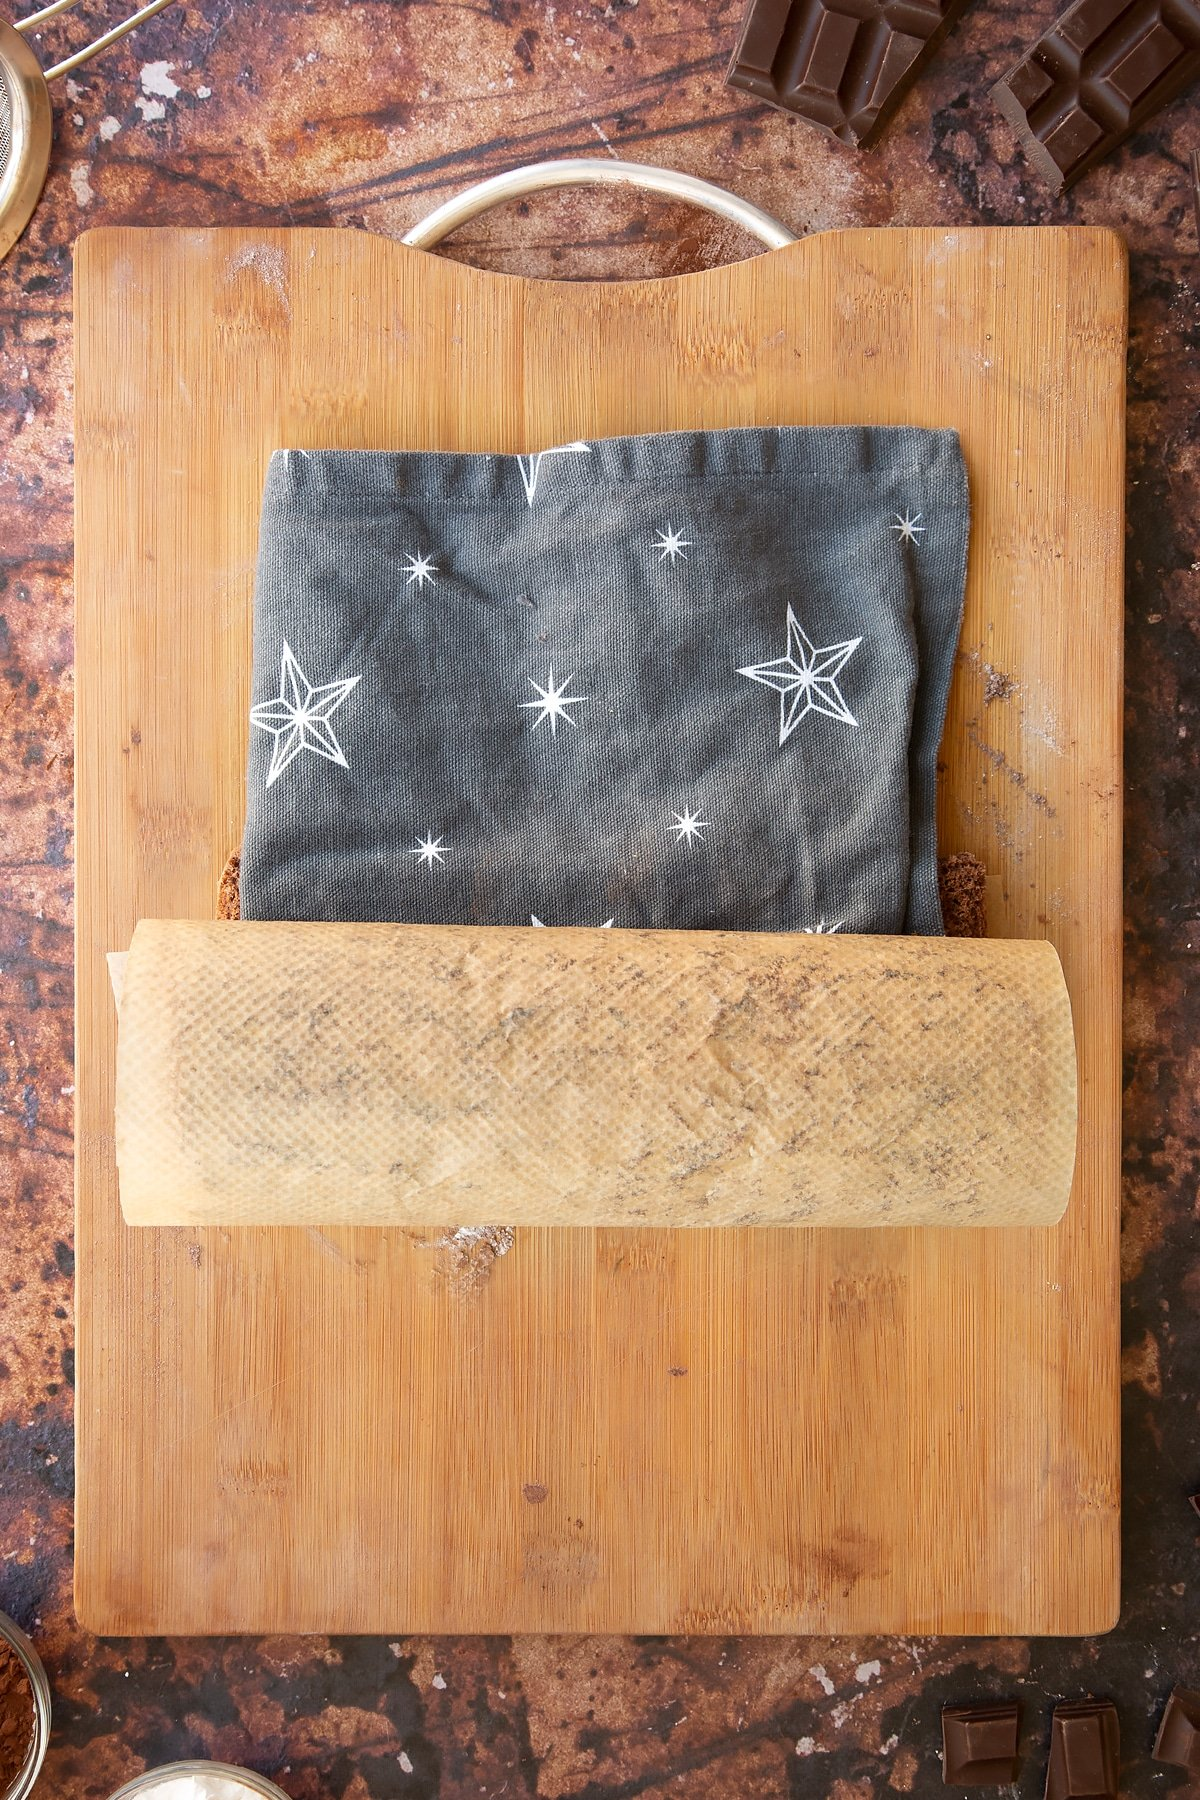 Wooden board with a chocolate Swiss roll sponge rolled up with a grey tea towel.